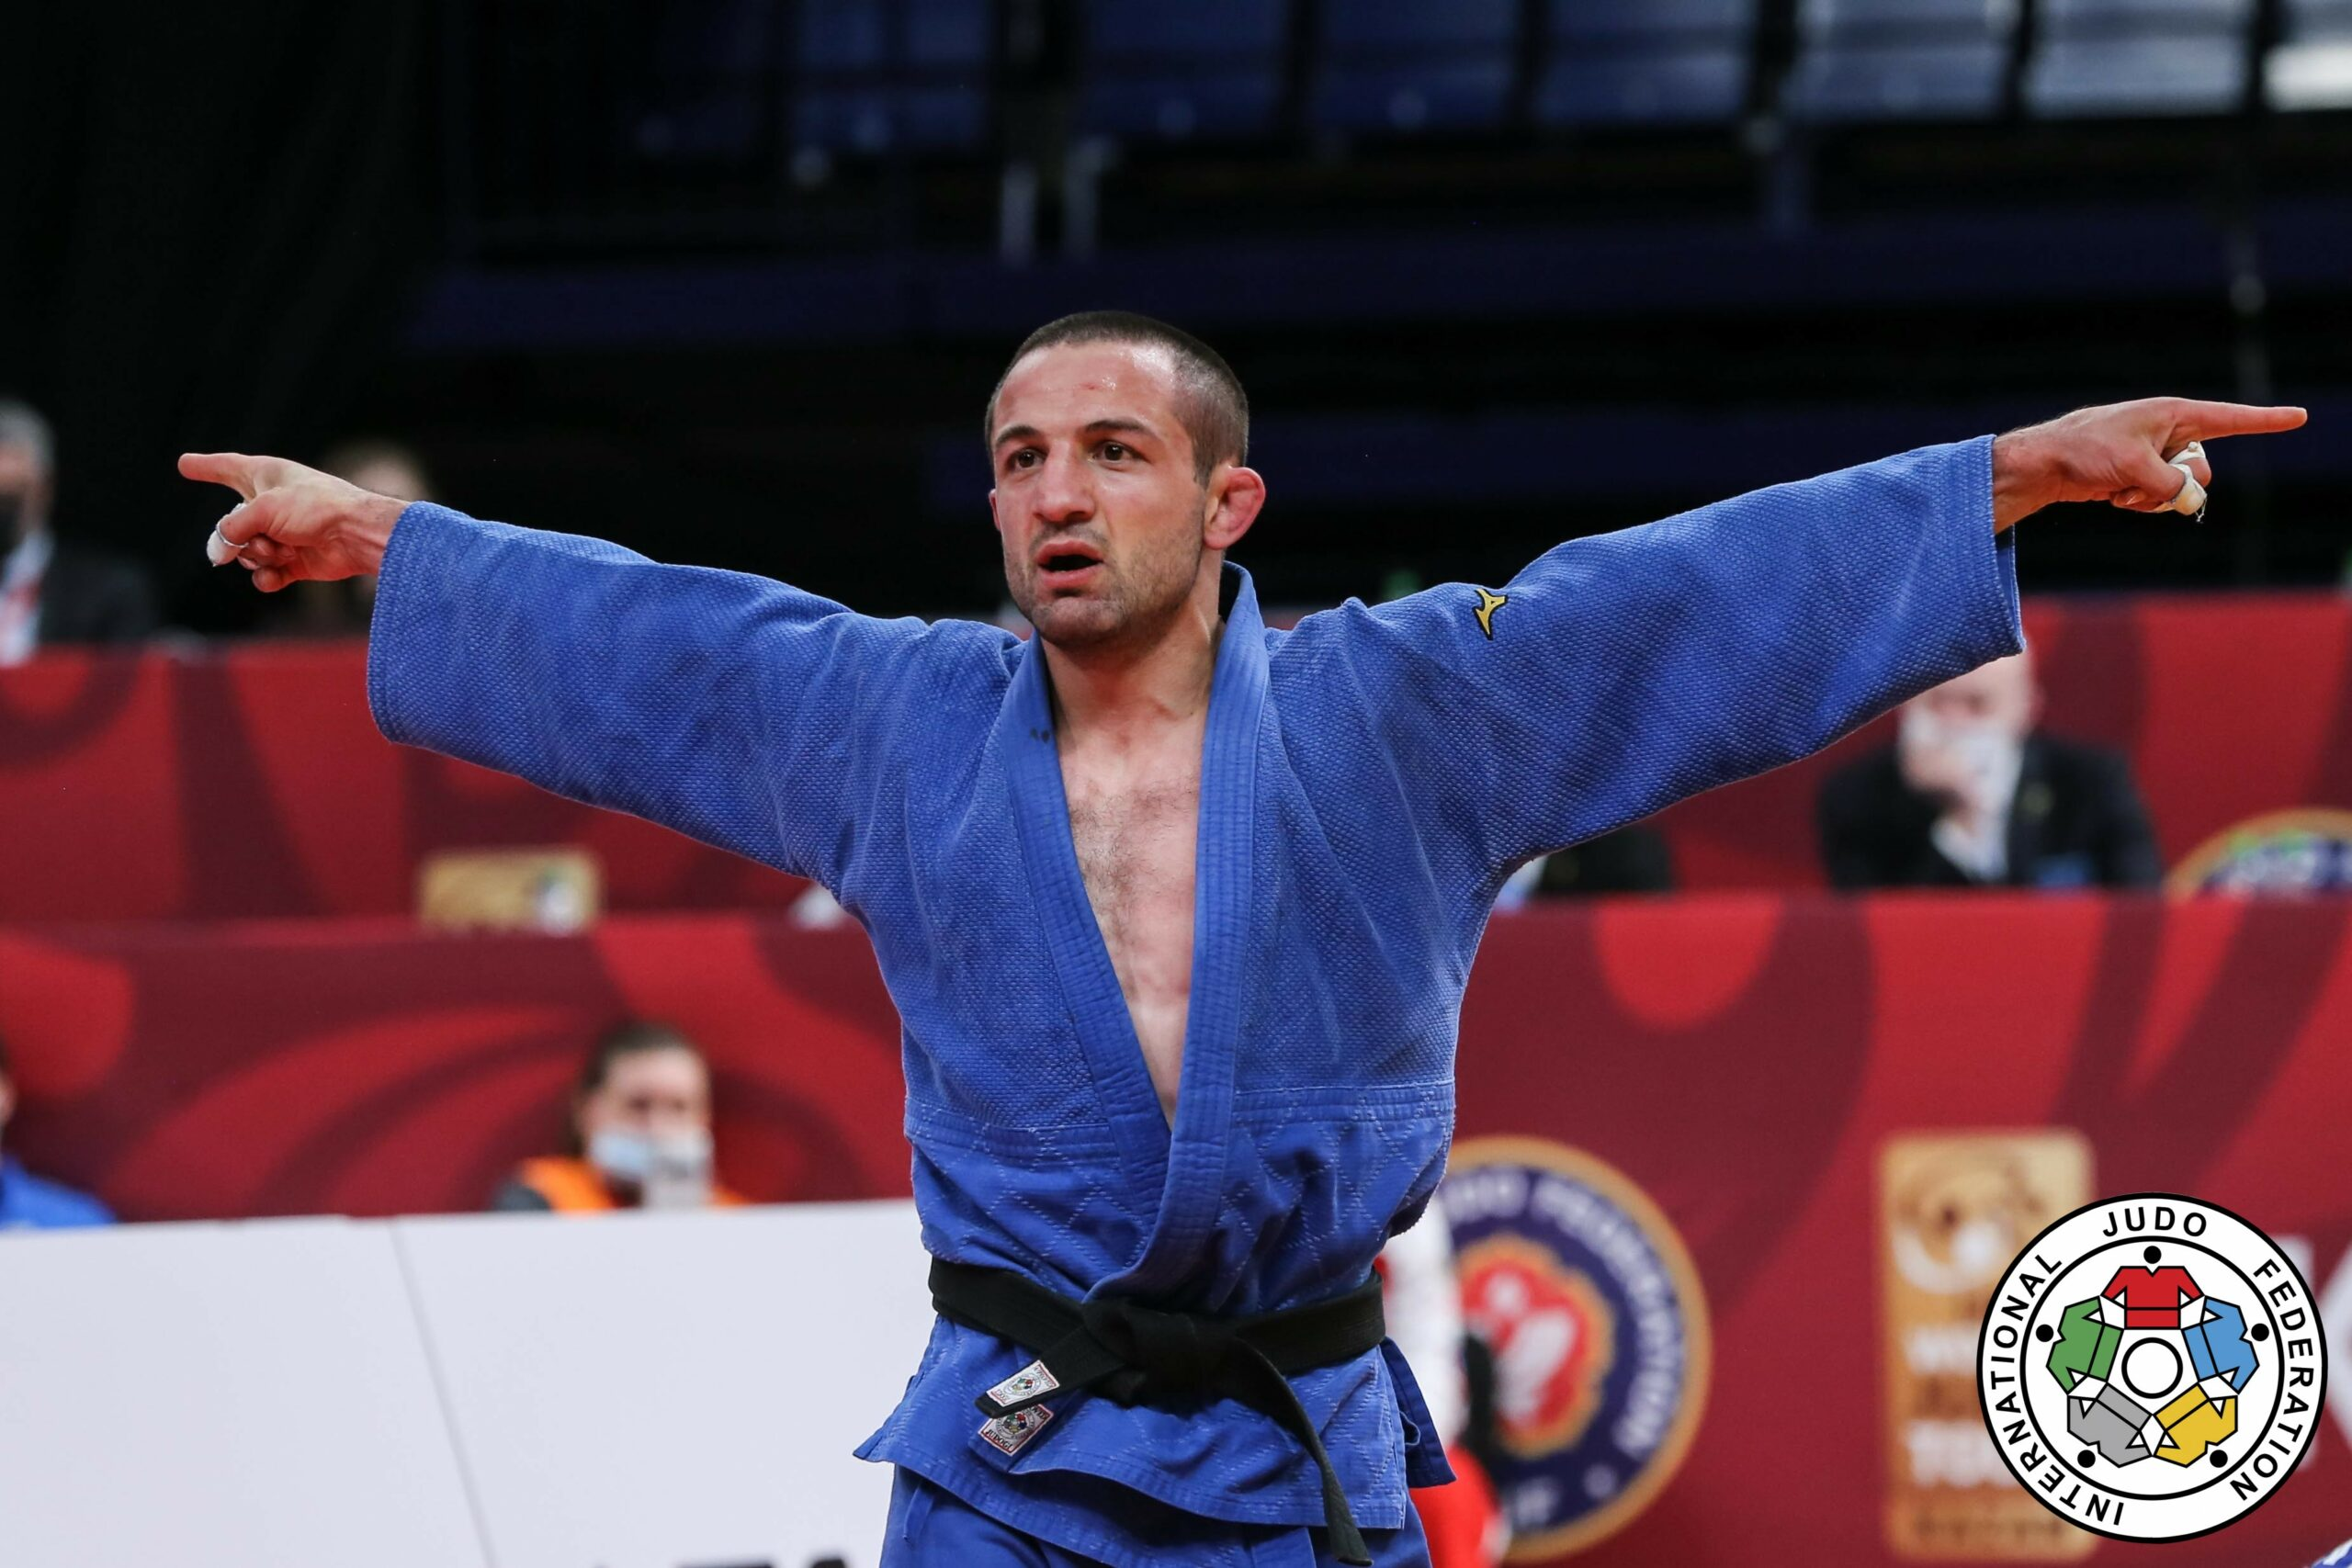 CHKHVIMIANI DISPELS DOUBTERS WITH TIMELY GOLD IN KAZAN